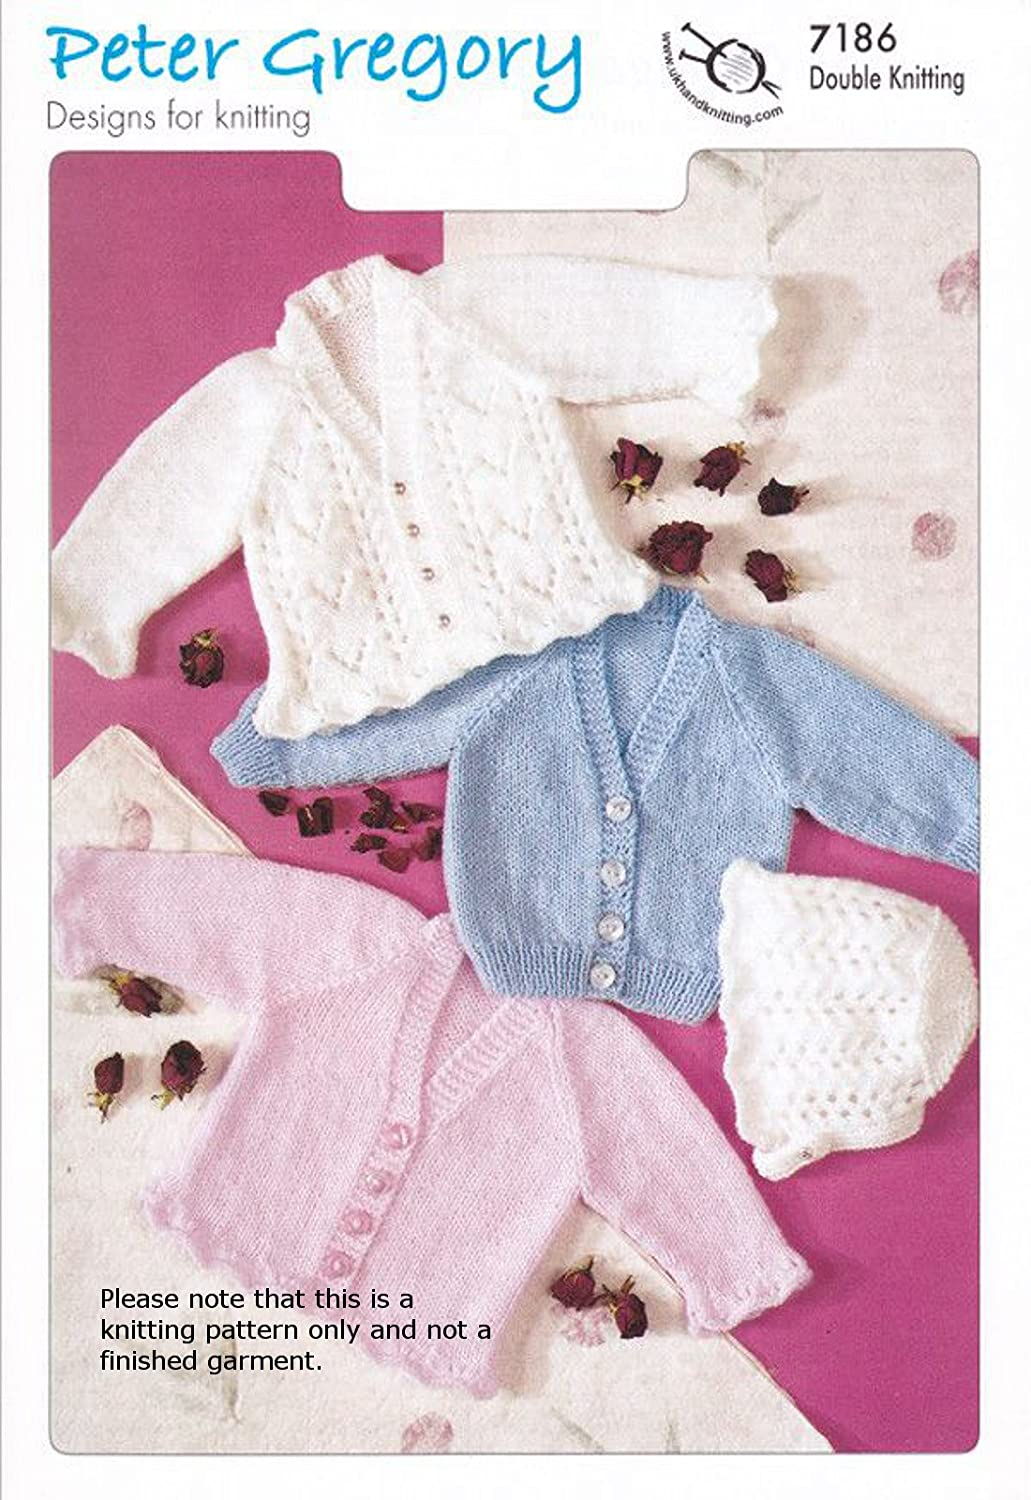 Baby double knitting pattern pg 7186 cardigans and bonnet baby baby double knitting pattern pg 7186 cardigans and bonnet baby product amazon kitchen home bankloansurffo Choice Image